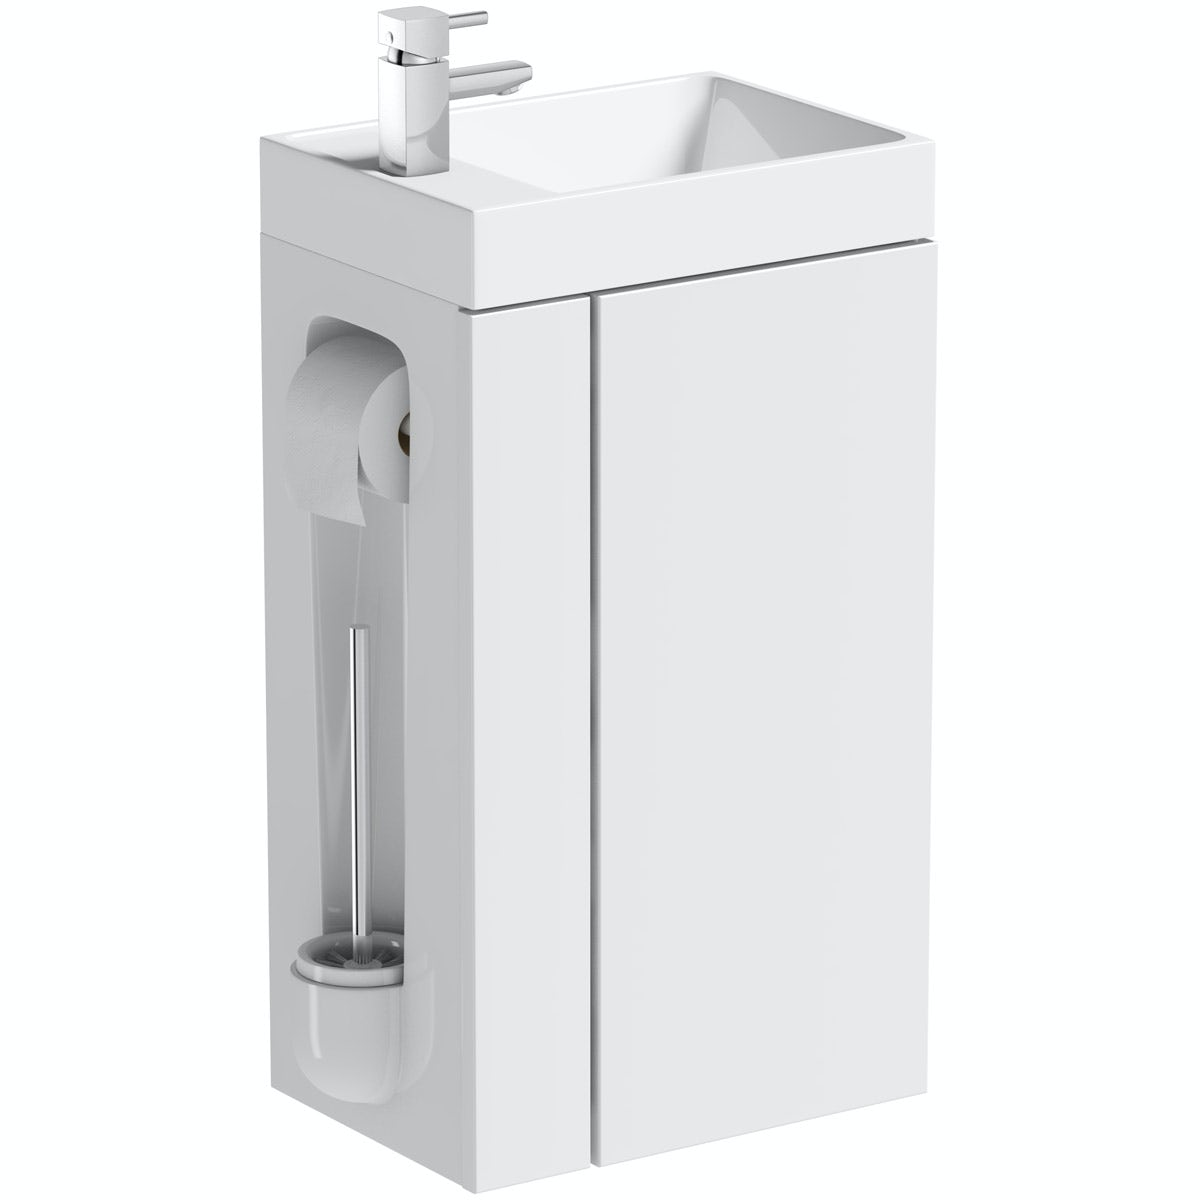 White Toilet Roll Holder Orchard Compact White Vanity Unit With Toilet Roll Holder Brush